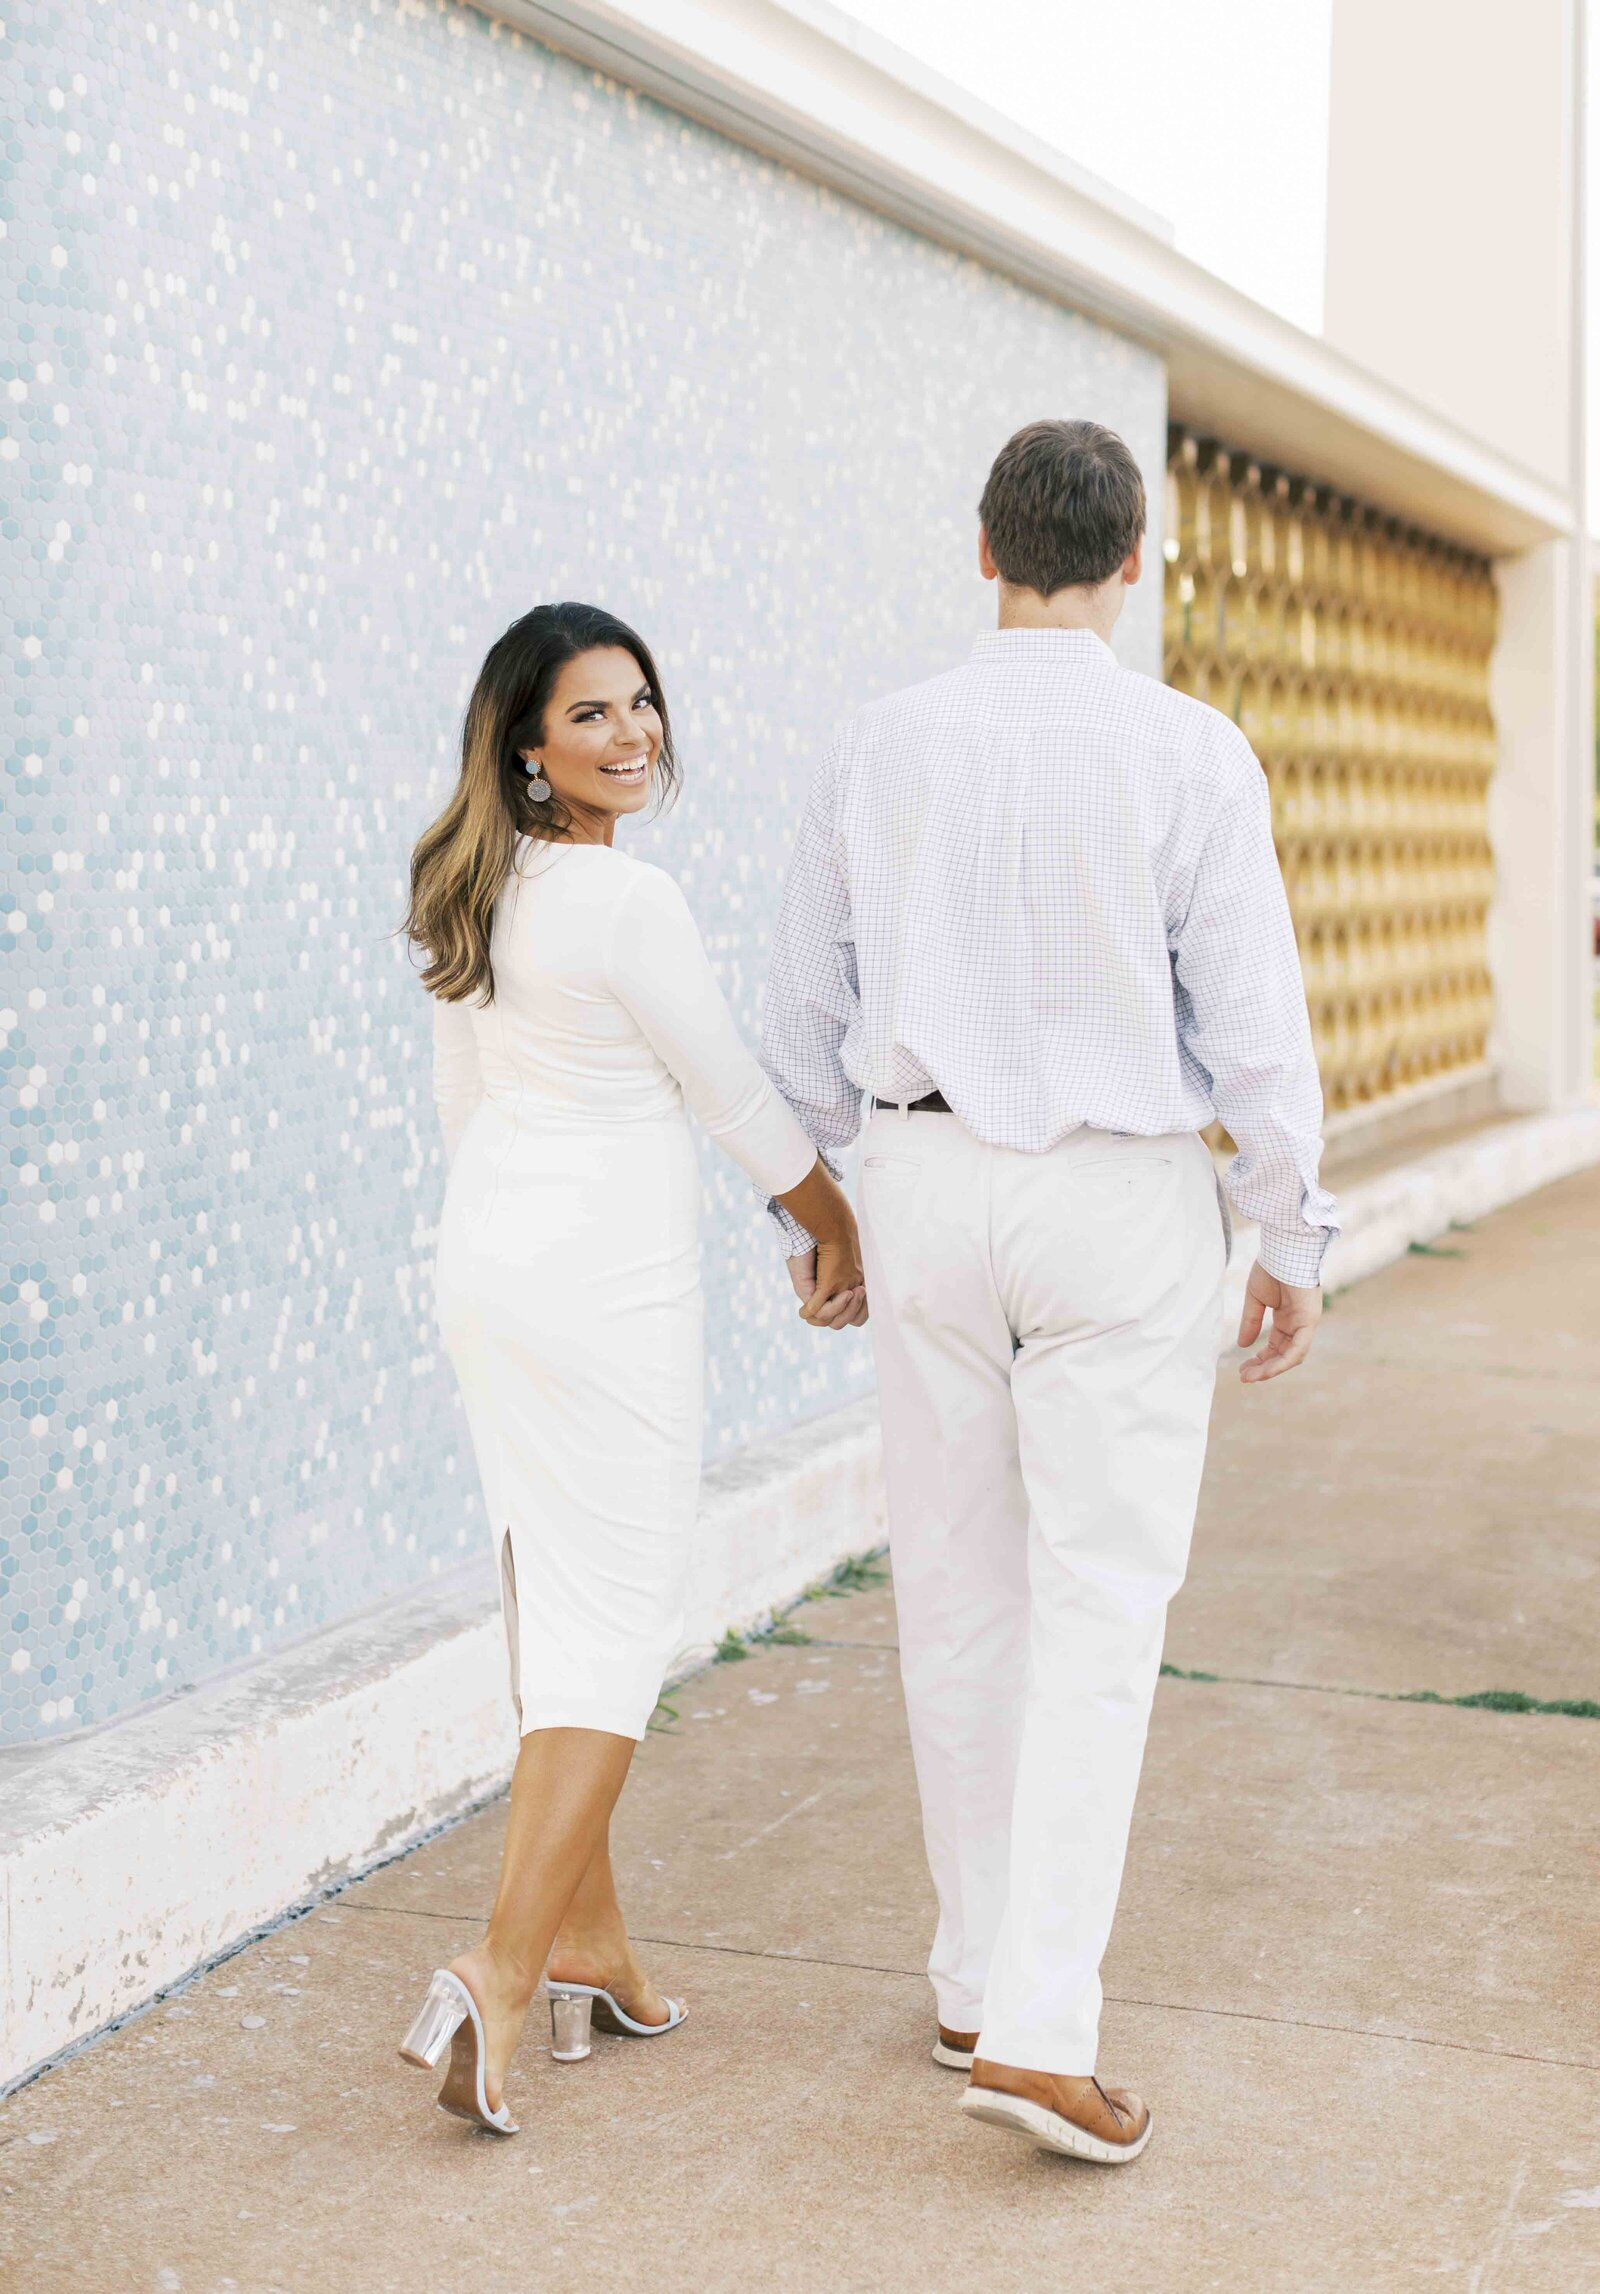 OKC-engagement-photographer30